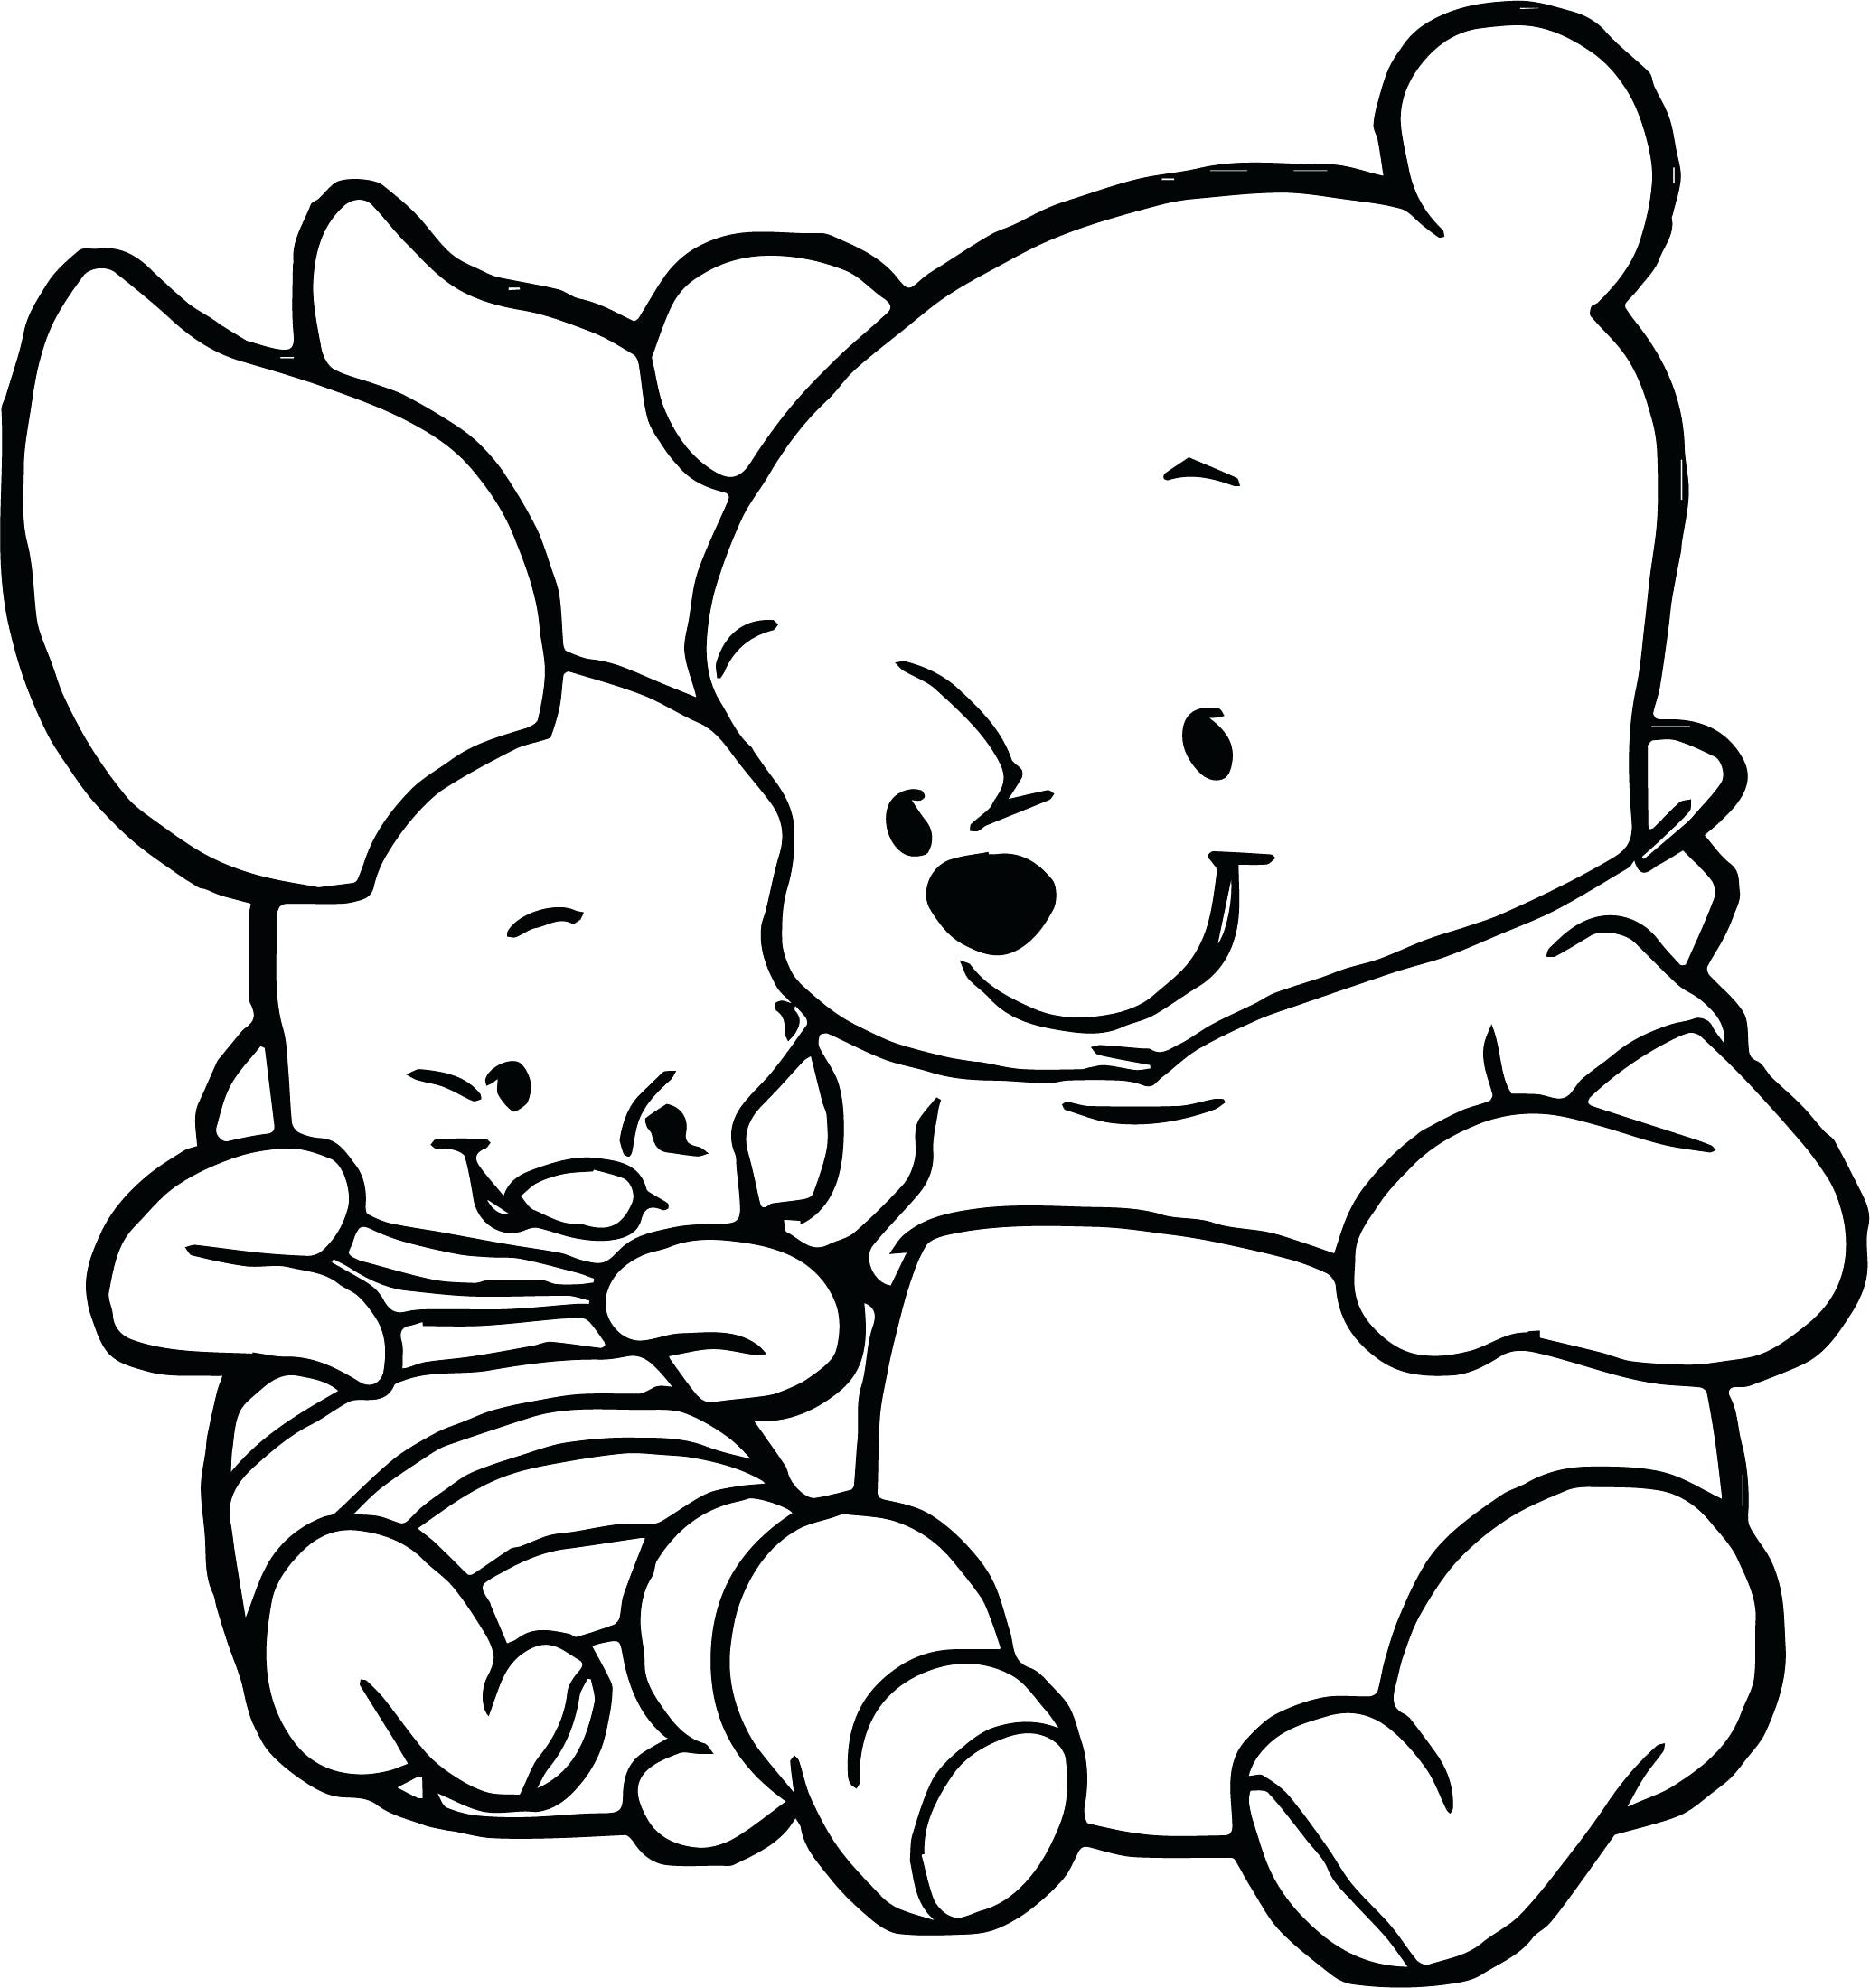 Winnie The Pooh Coloring Pages At Getcolorings